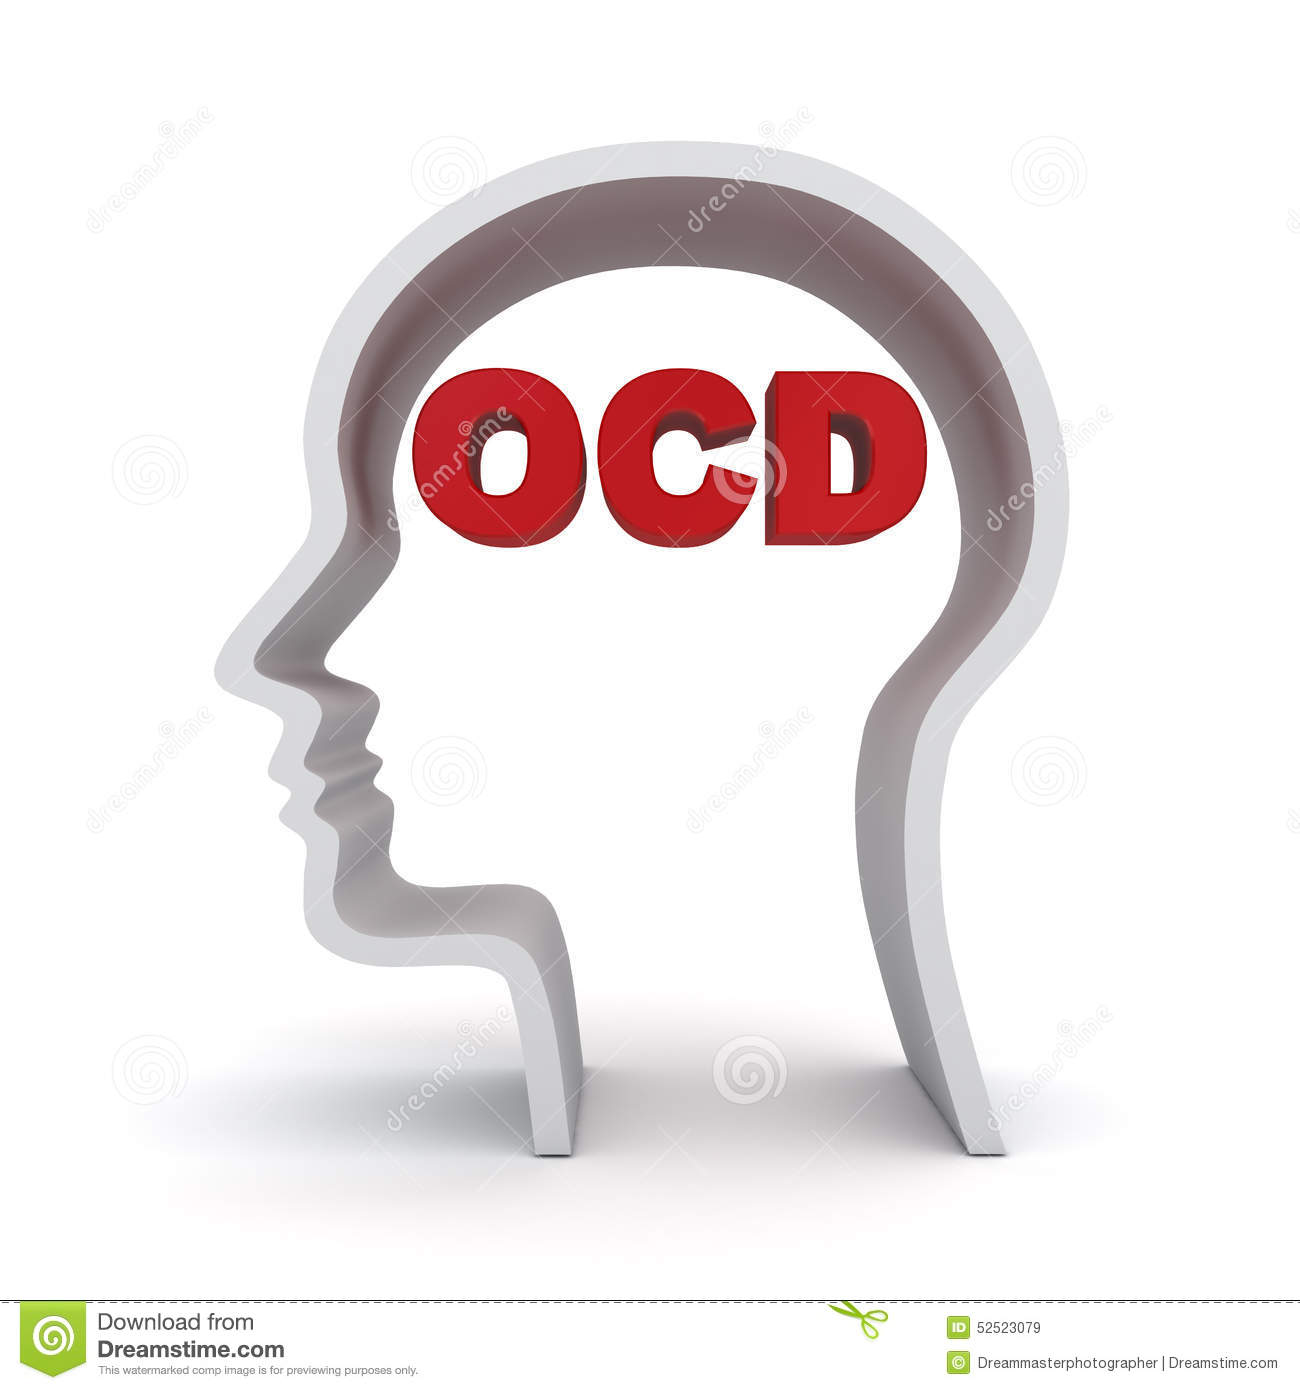 obsessive compulsive disorder causes symptoms and Ocd (obsessive-compulsive disorder) is a unique mental condition characterised by obsessions and compulsions.